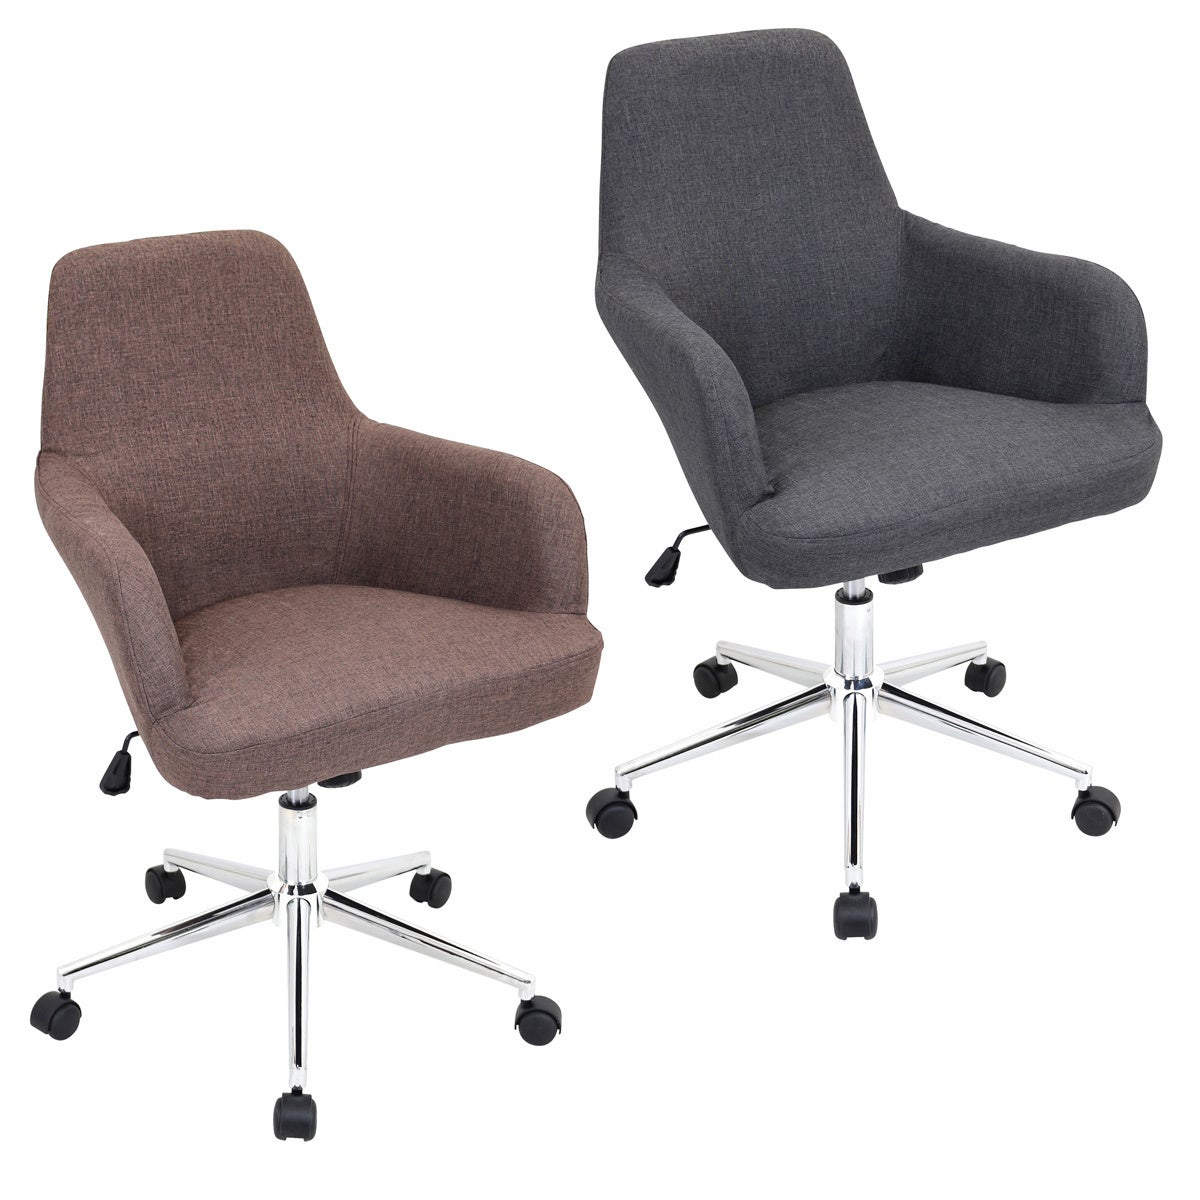 Merveilleux Shop LumiSource Degree Fabric Office Chair   Free Shipping Today    Overstock.com   10156441